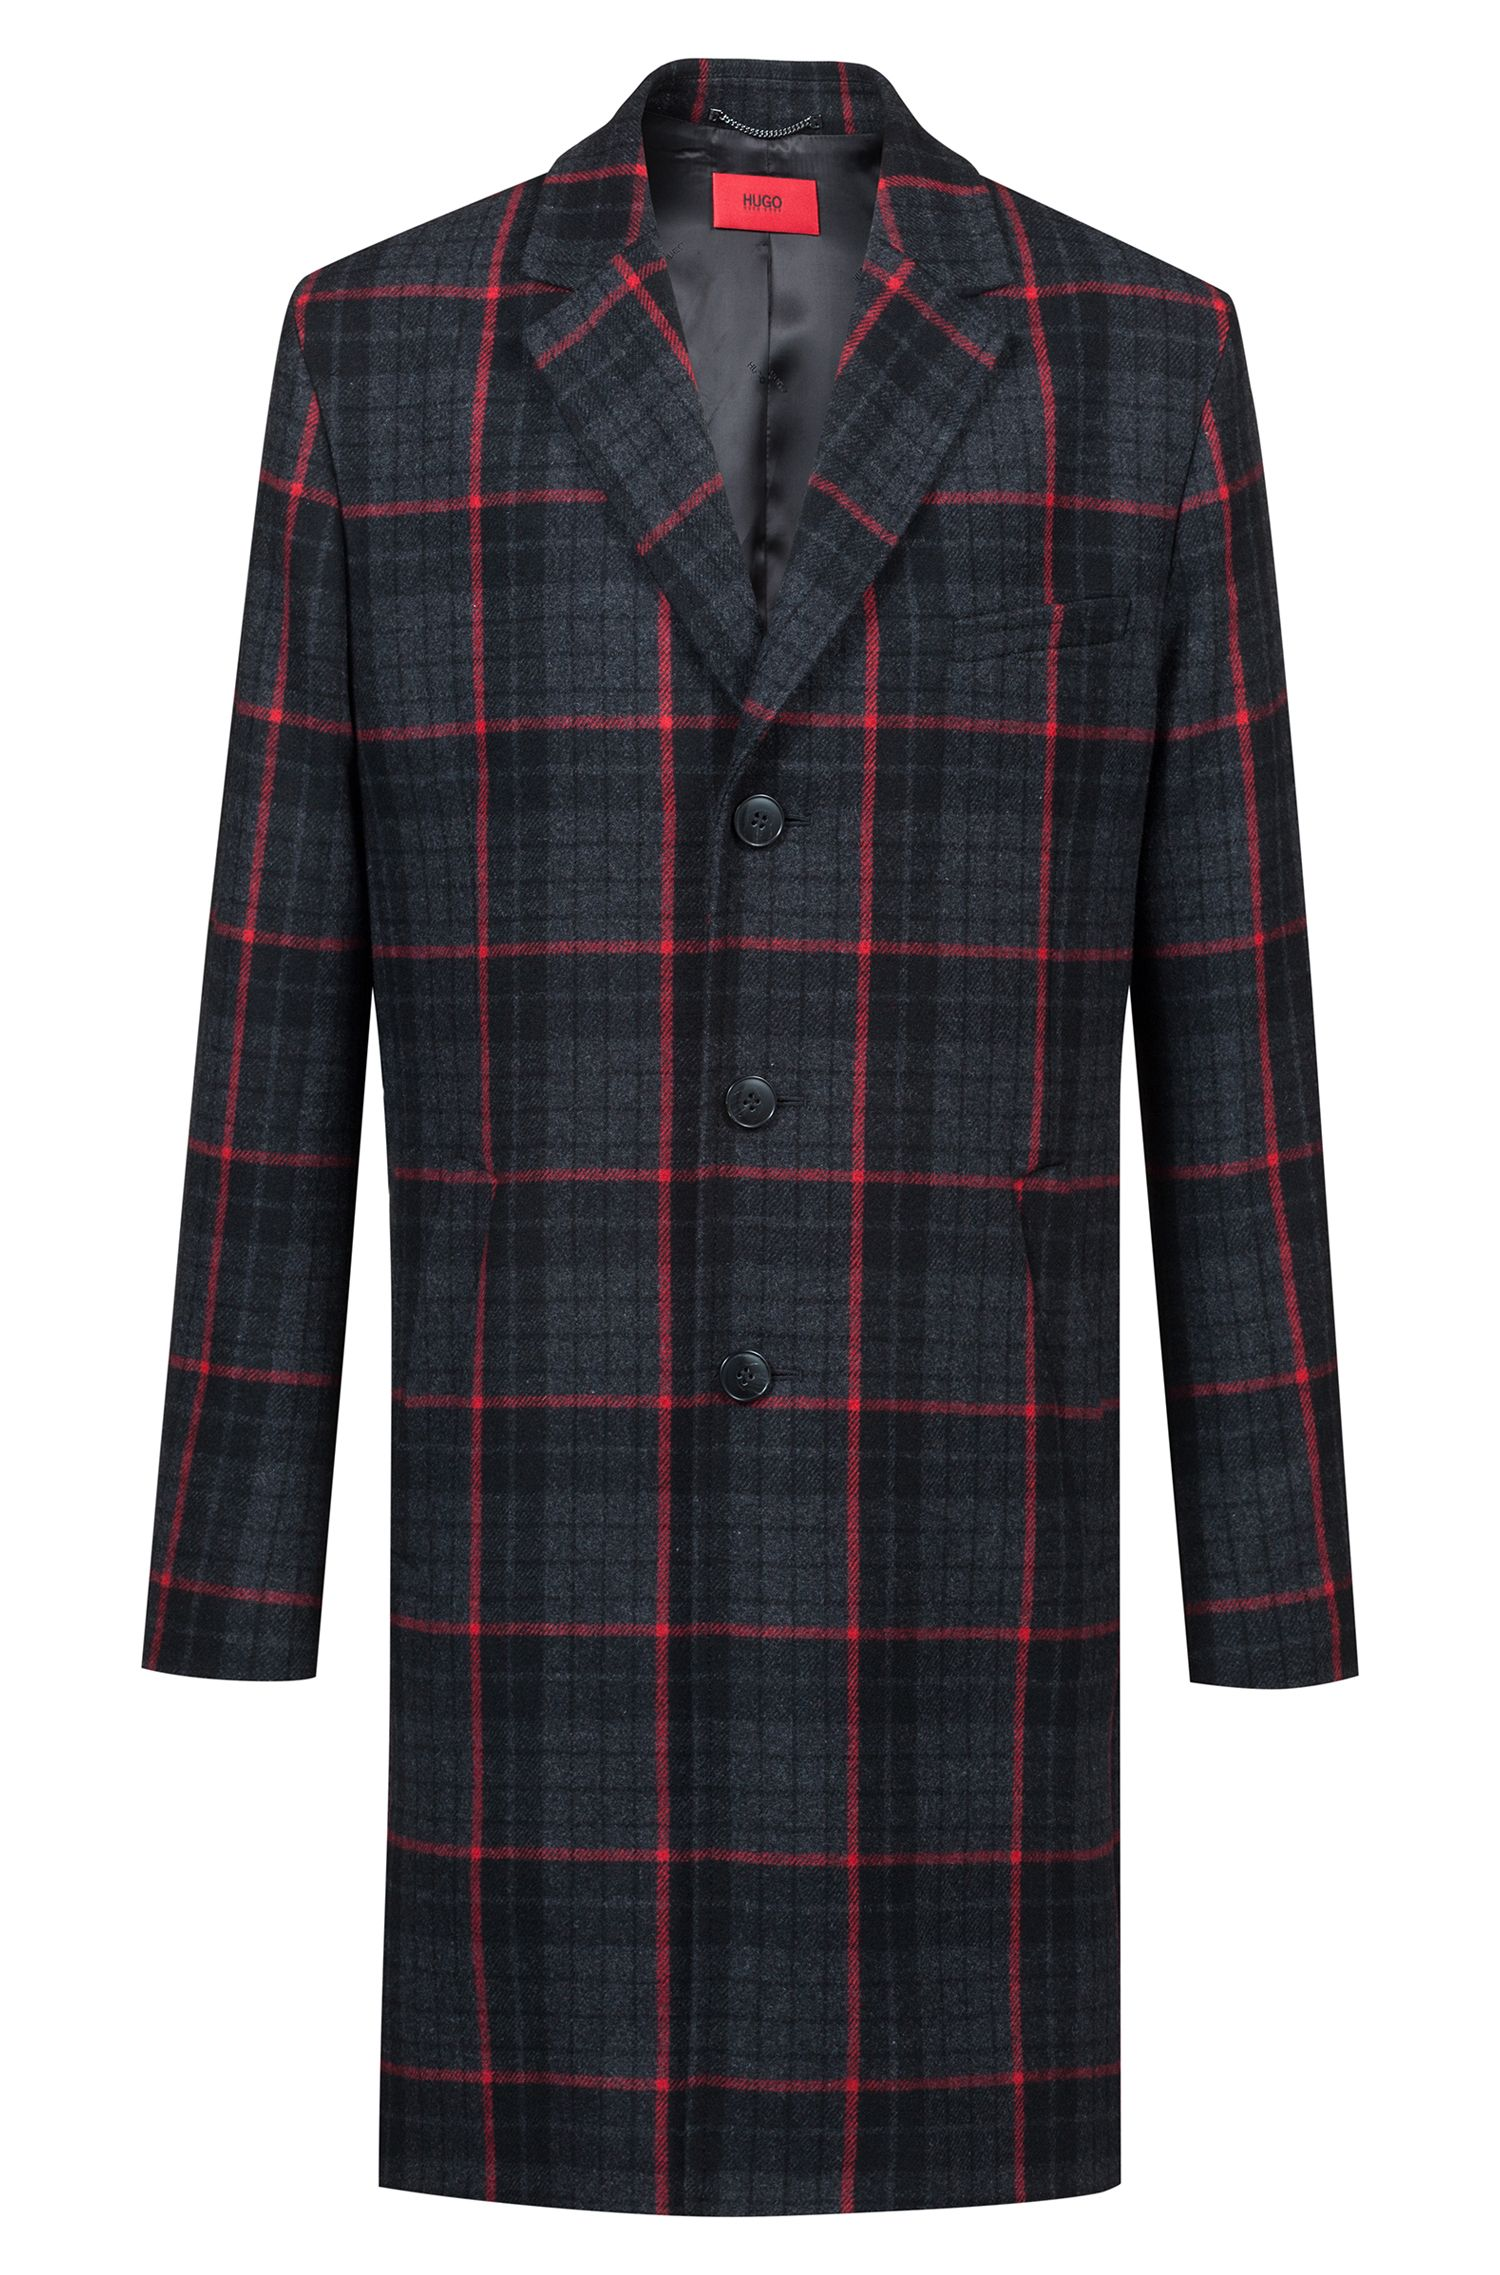 Glen check slim-fit coat in a wool blend, Patterned